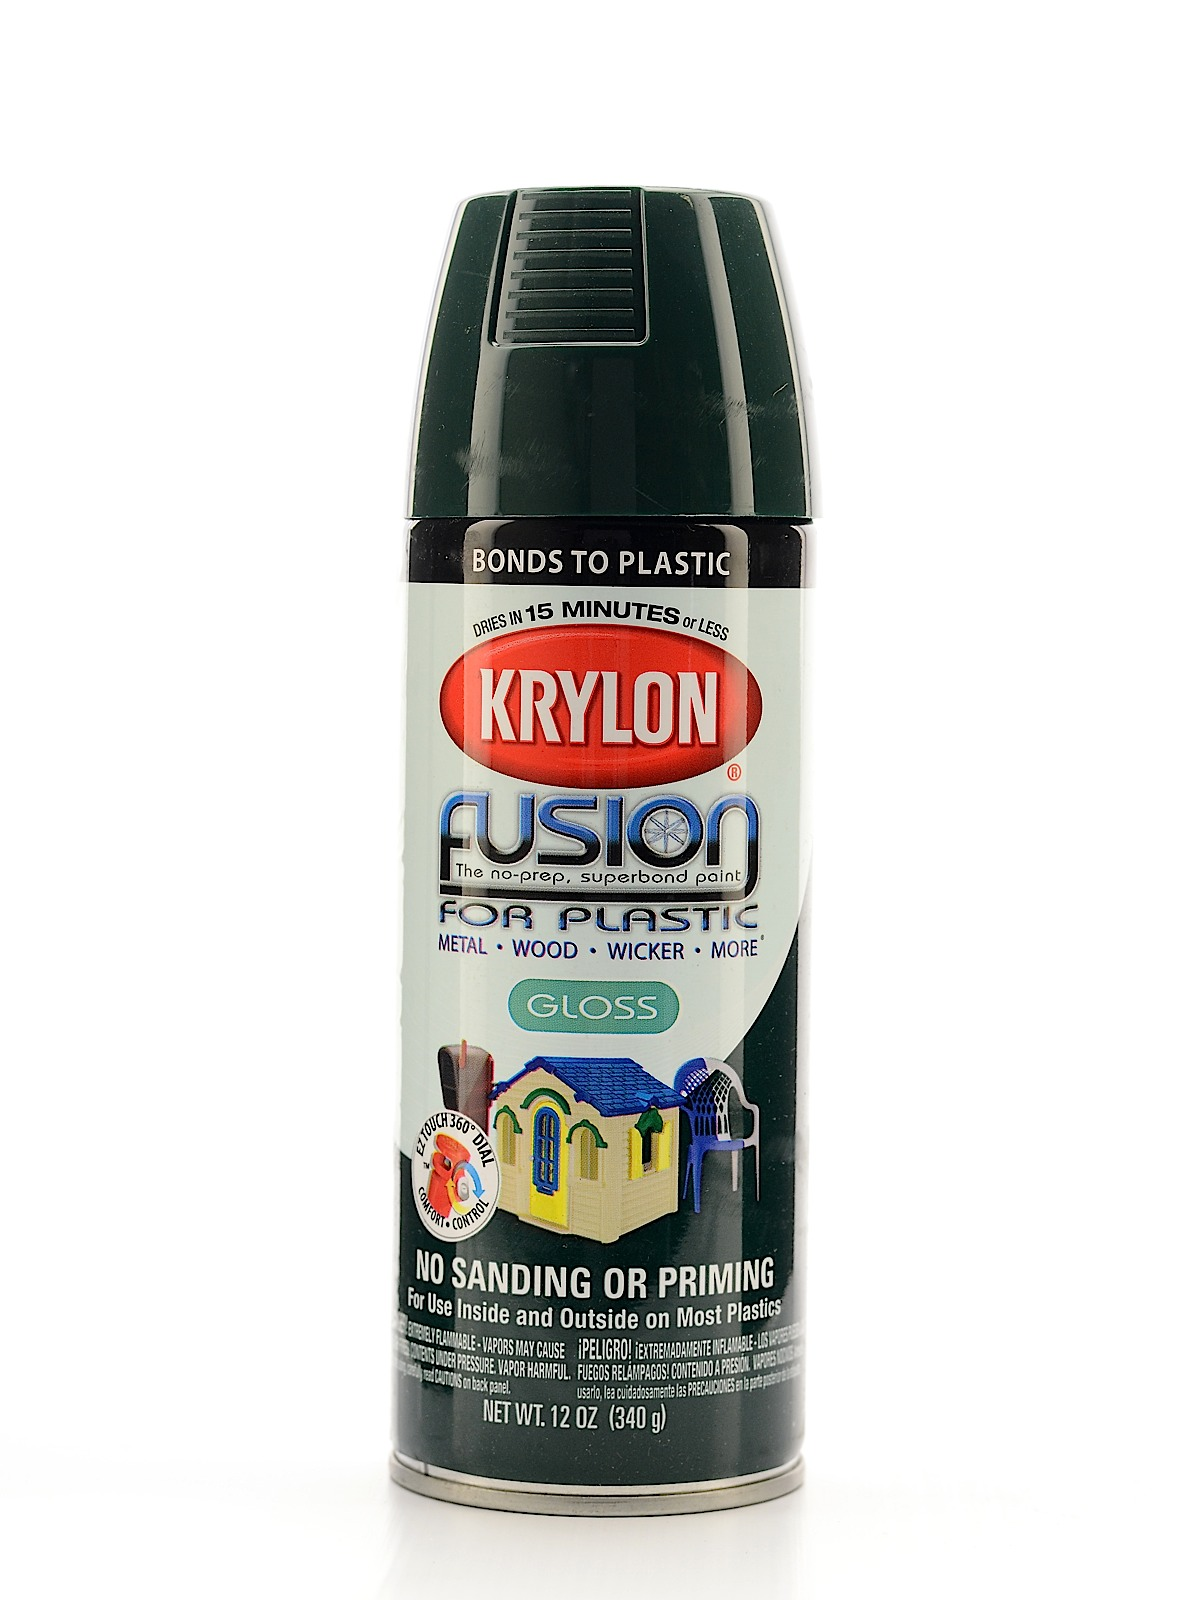 100 Where Can I Buy Krylon Fusion Spray Paint For Plastic L Plastic Spray Paint Colors Ideas